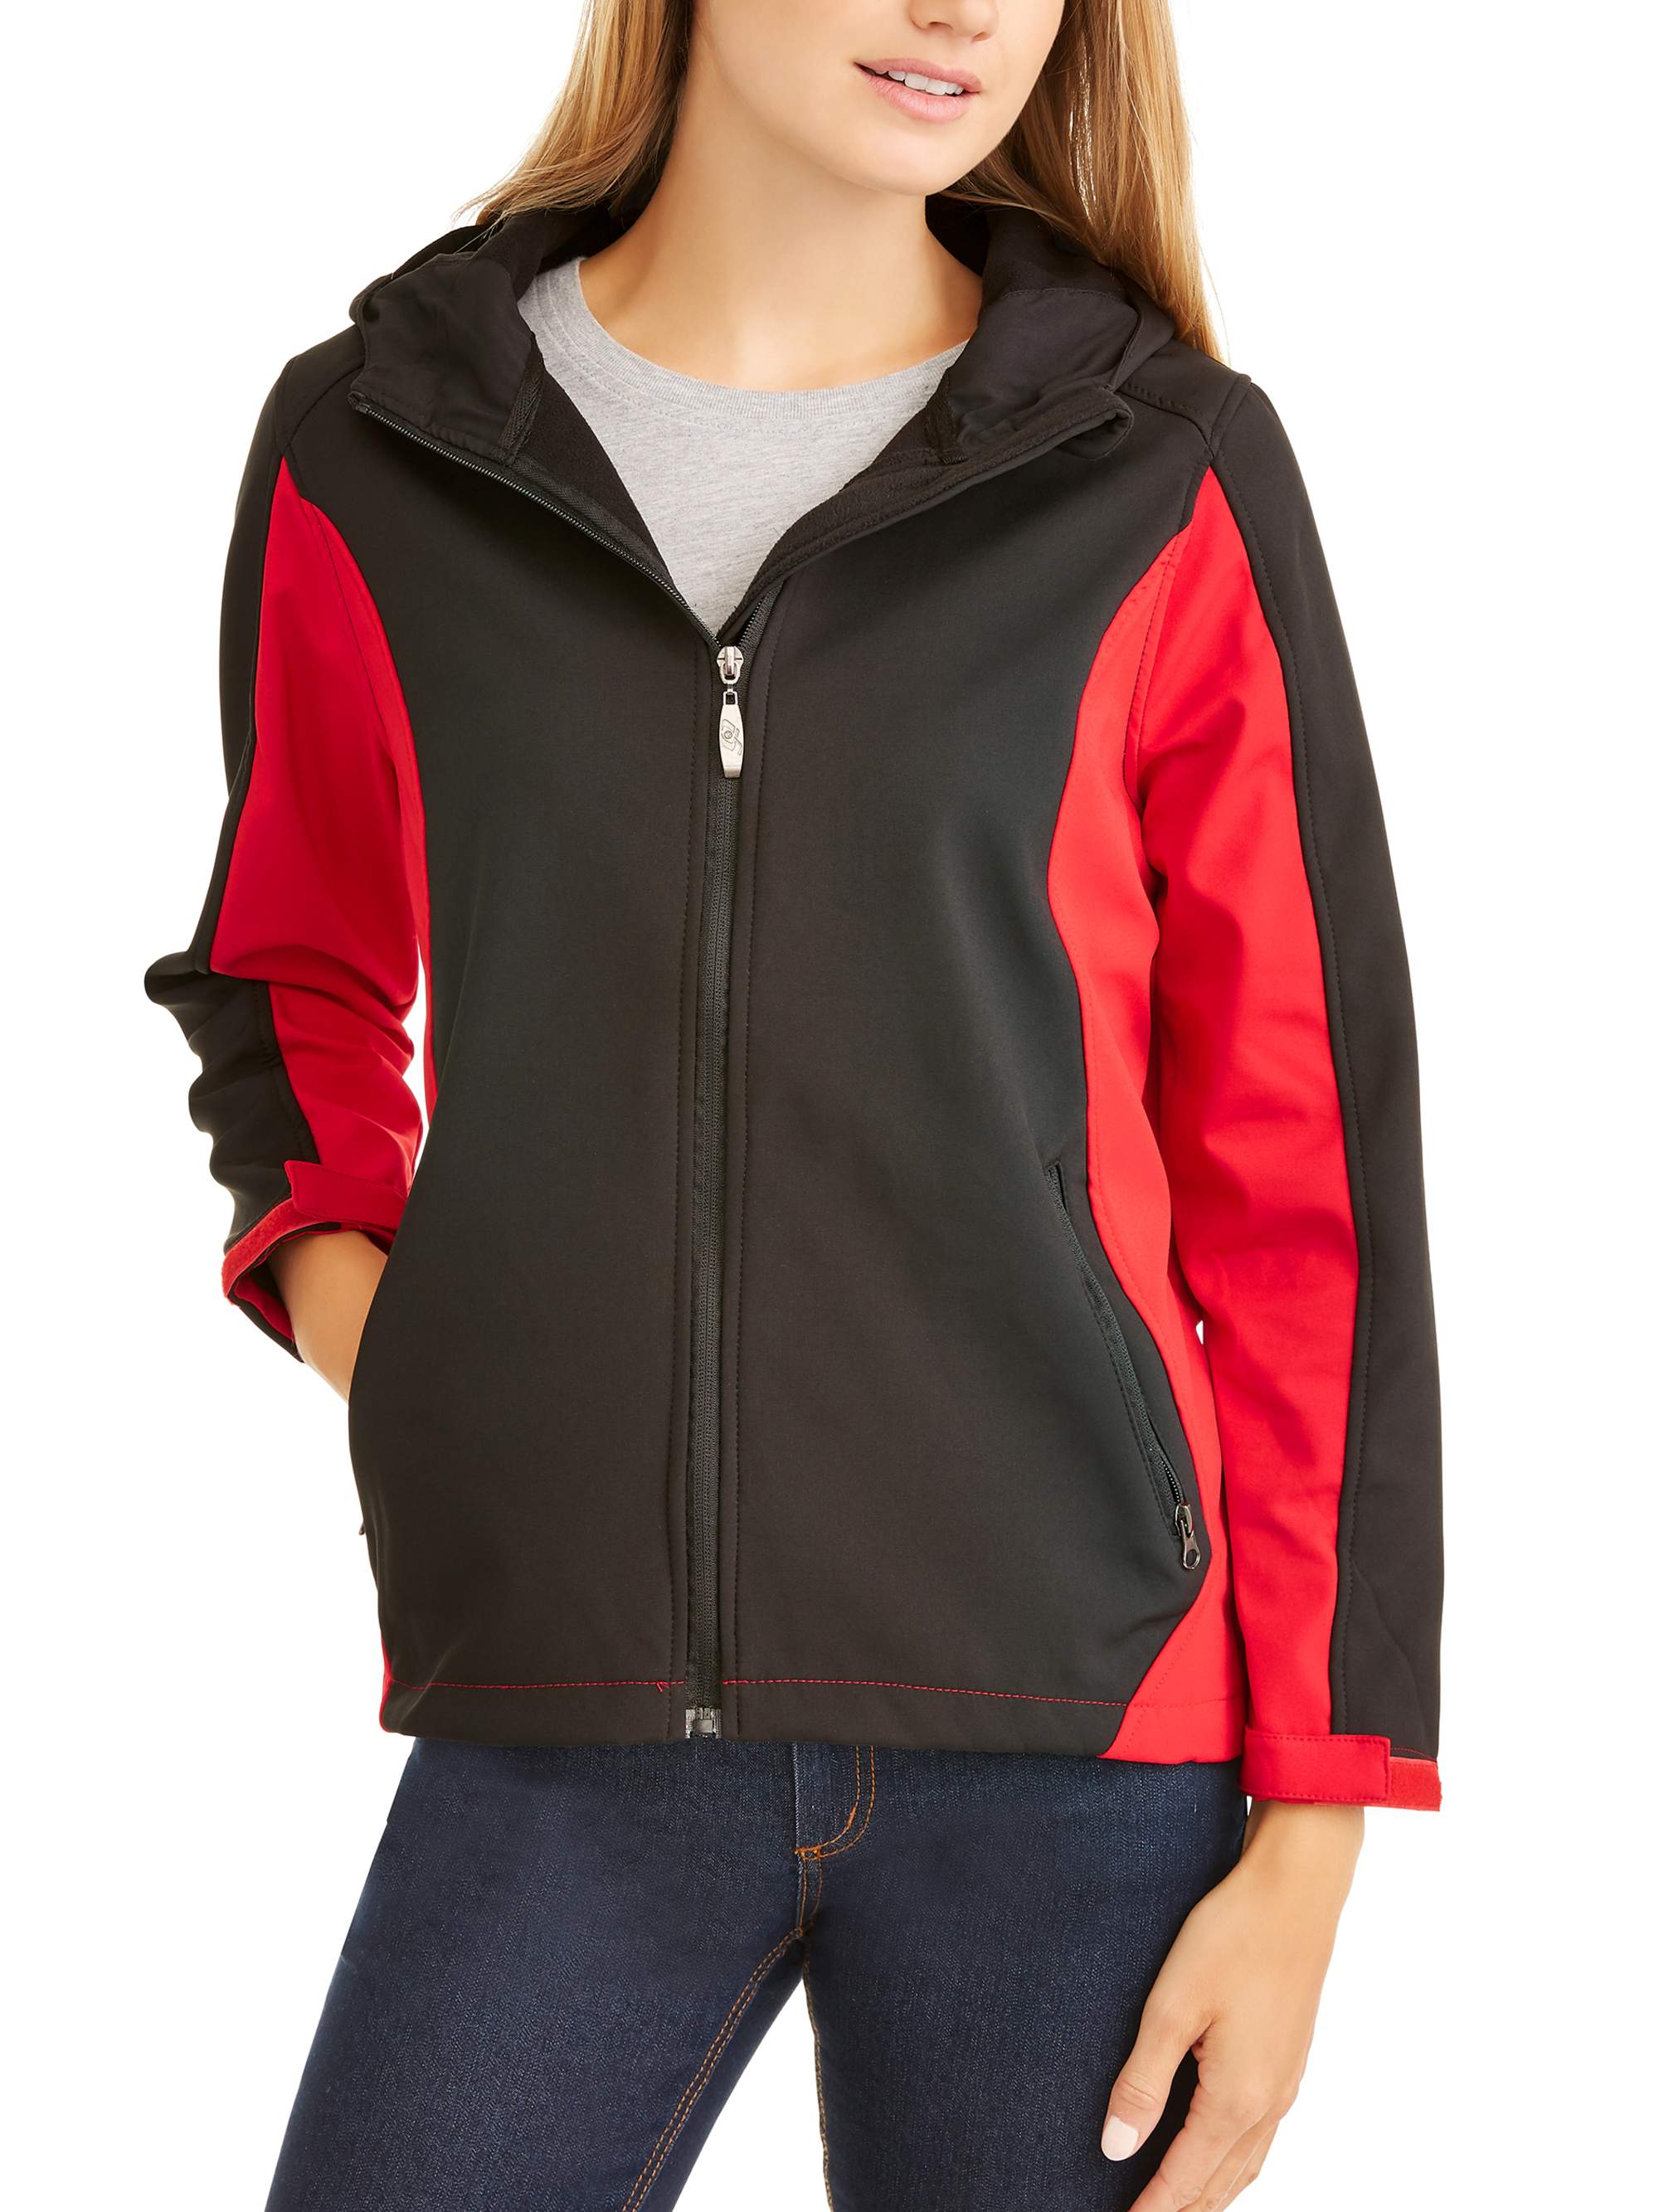 Women's Color Block Bonded Soft Shell Jacket with Hood